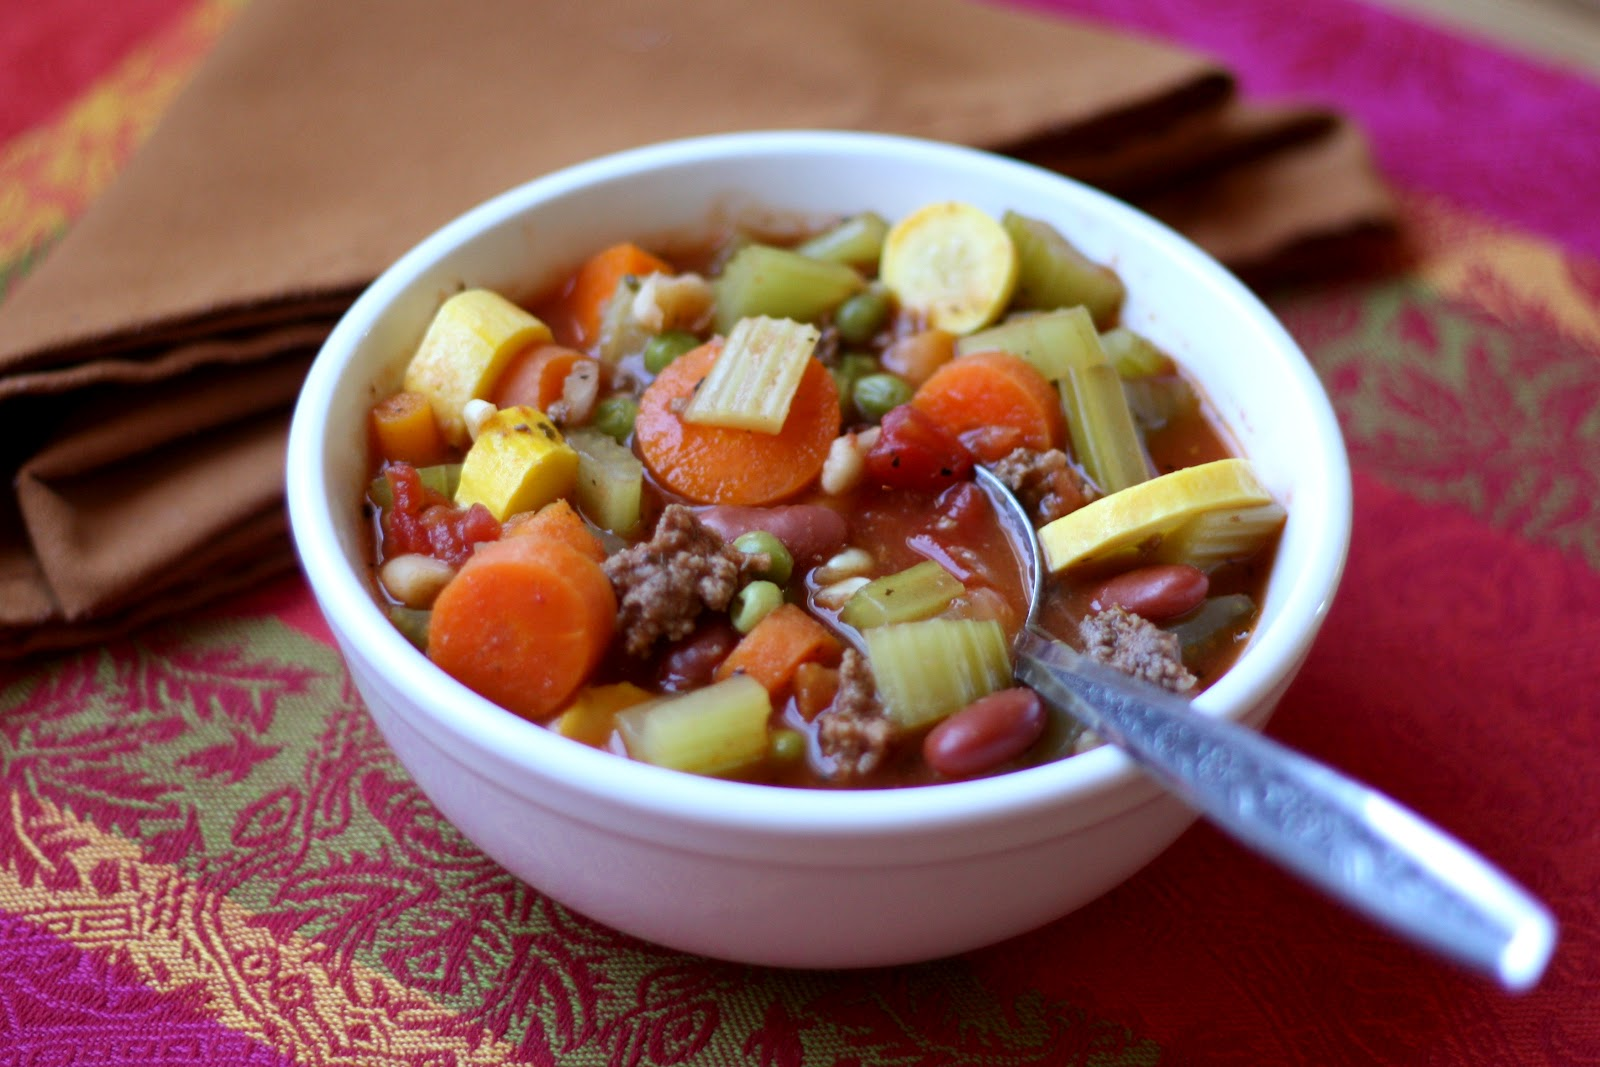 Barefeet In The Kitchen: Italian Vegetable Soup with Summer Squash